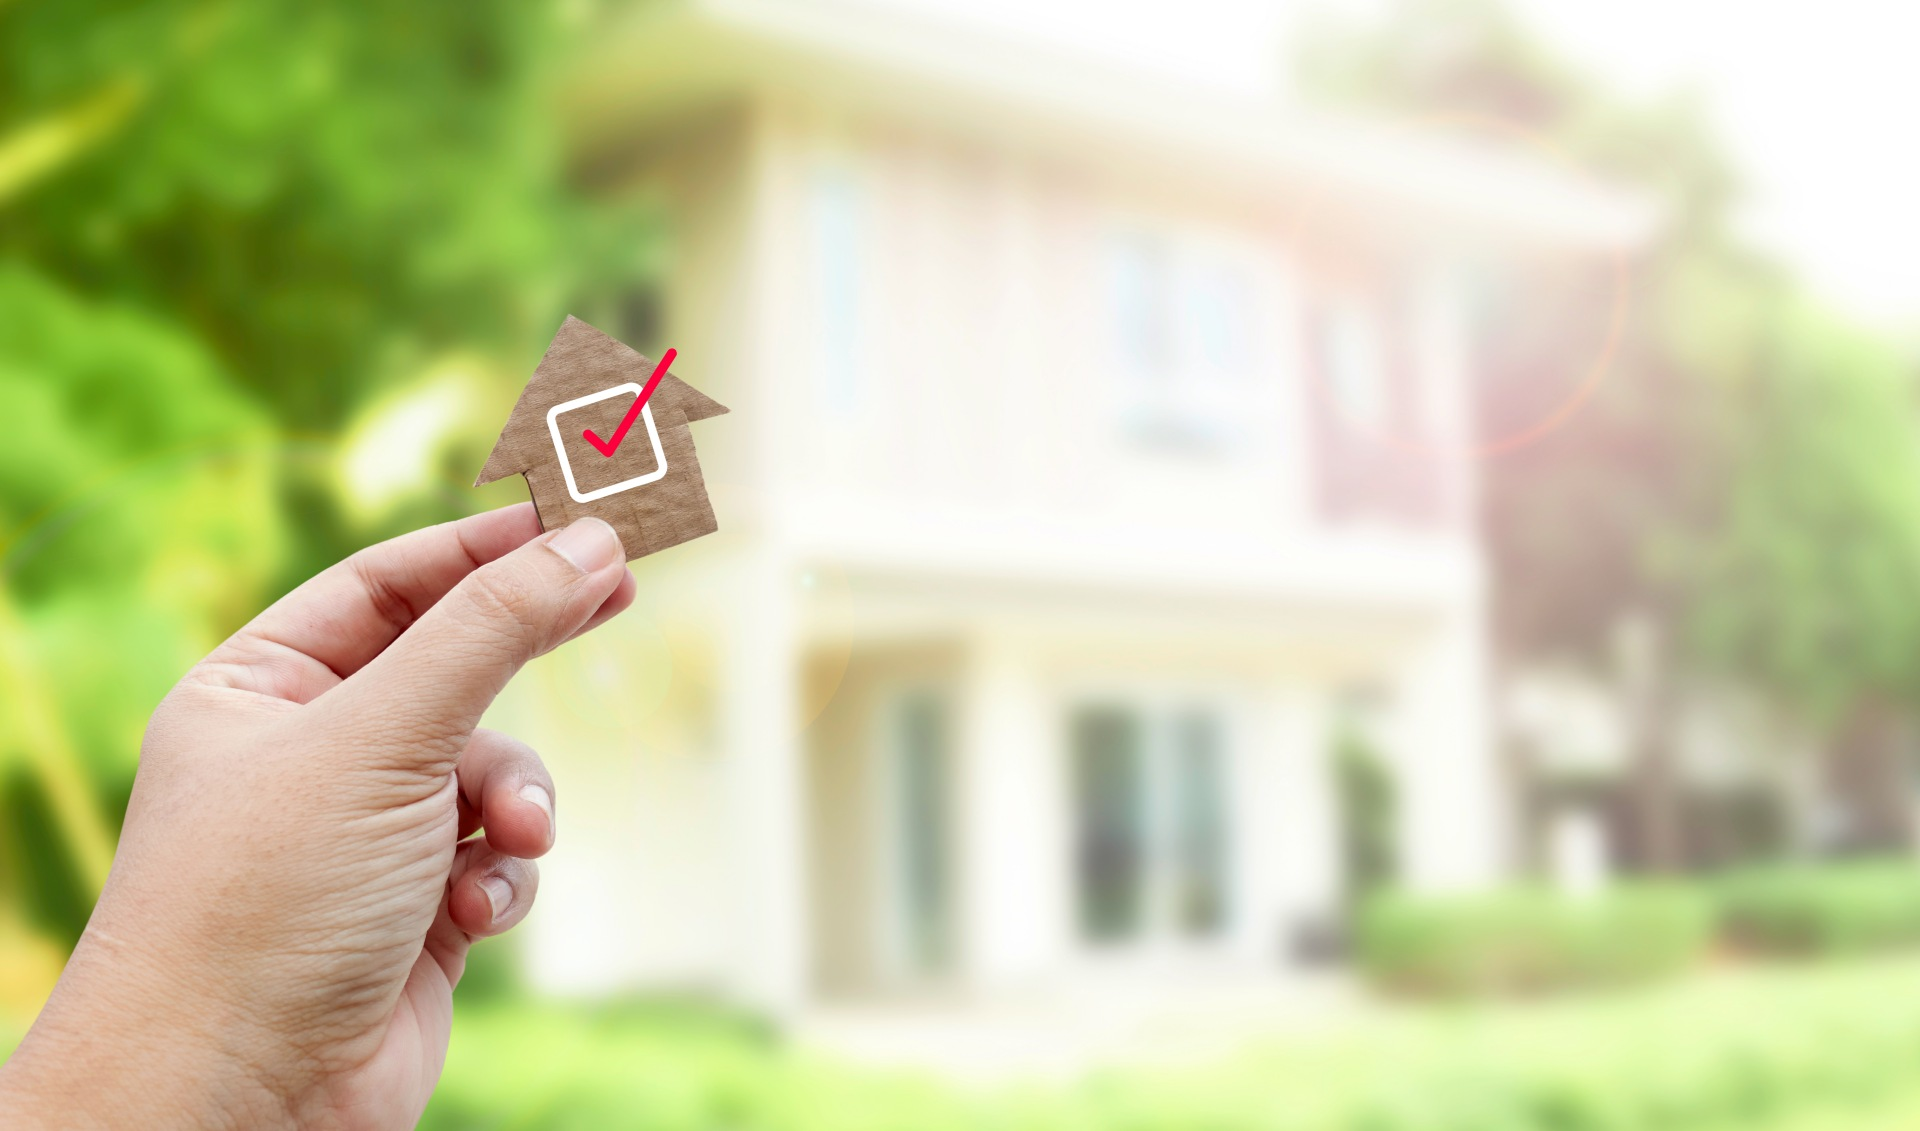 Should You Have a Home Inspection Before Selling?